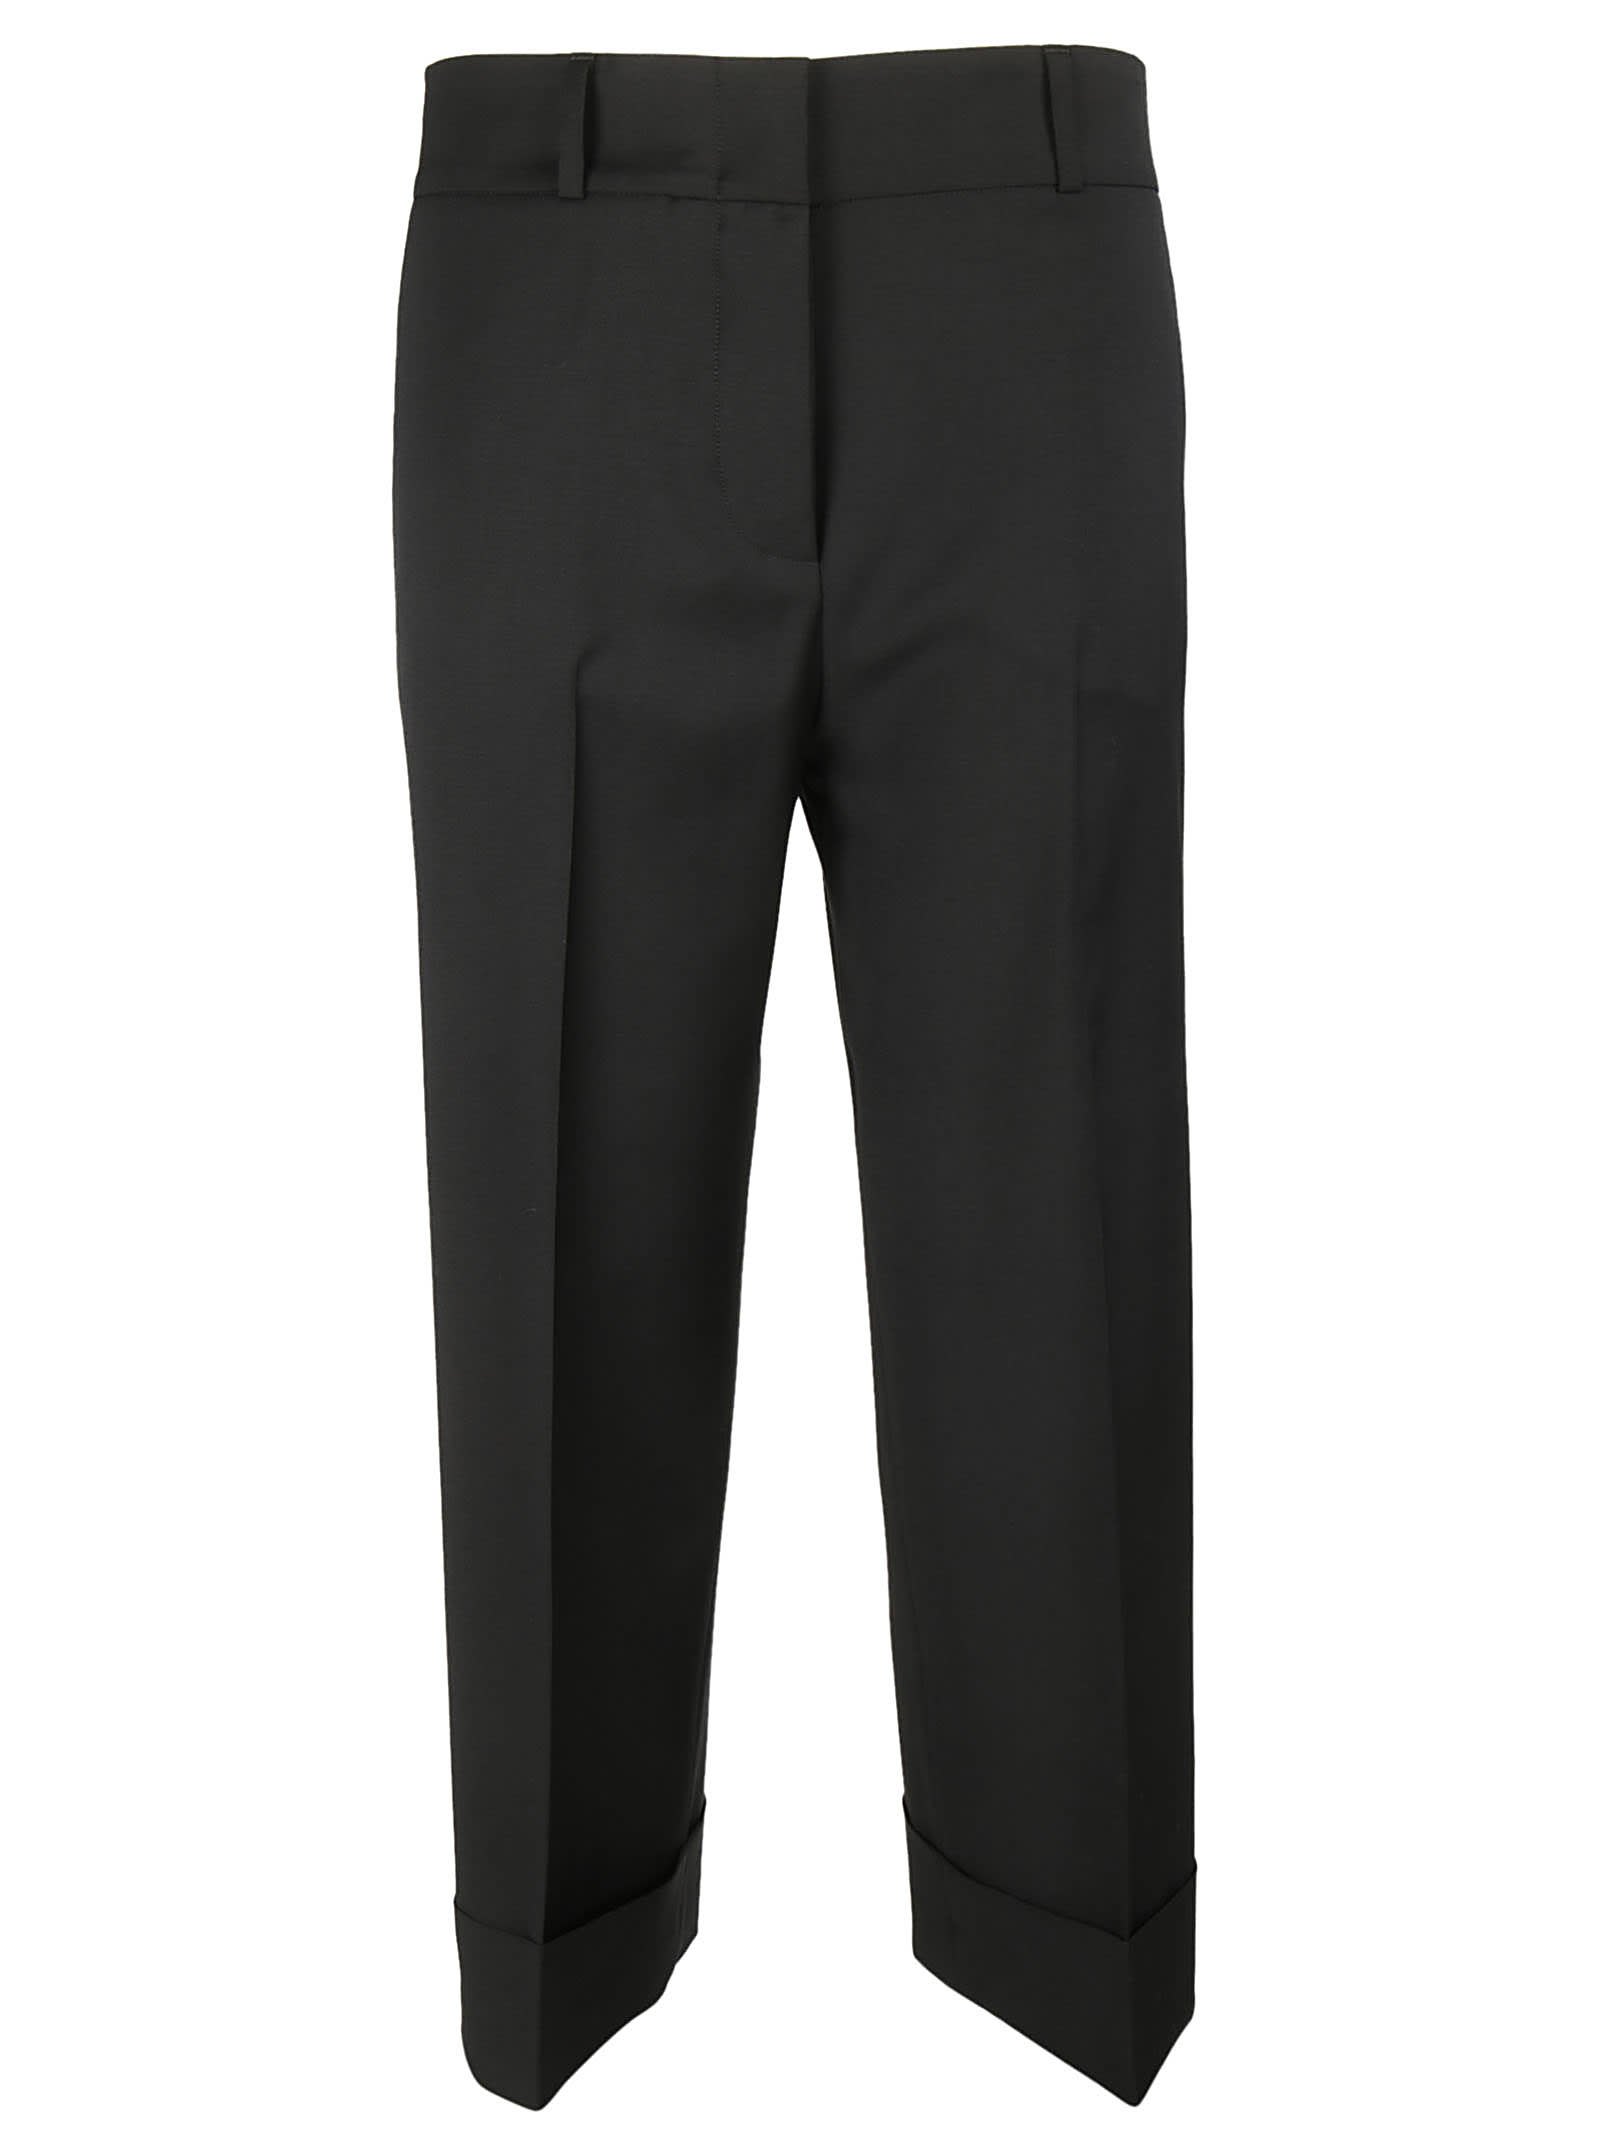 QL2 Mable Trousers